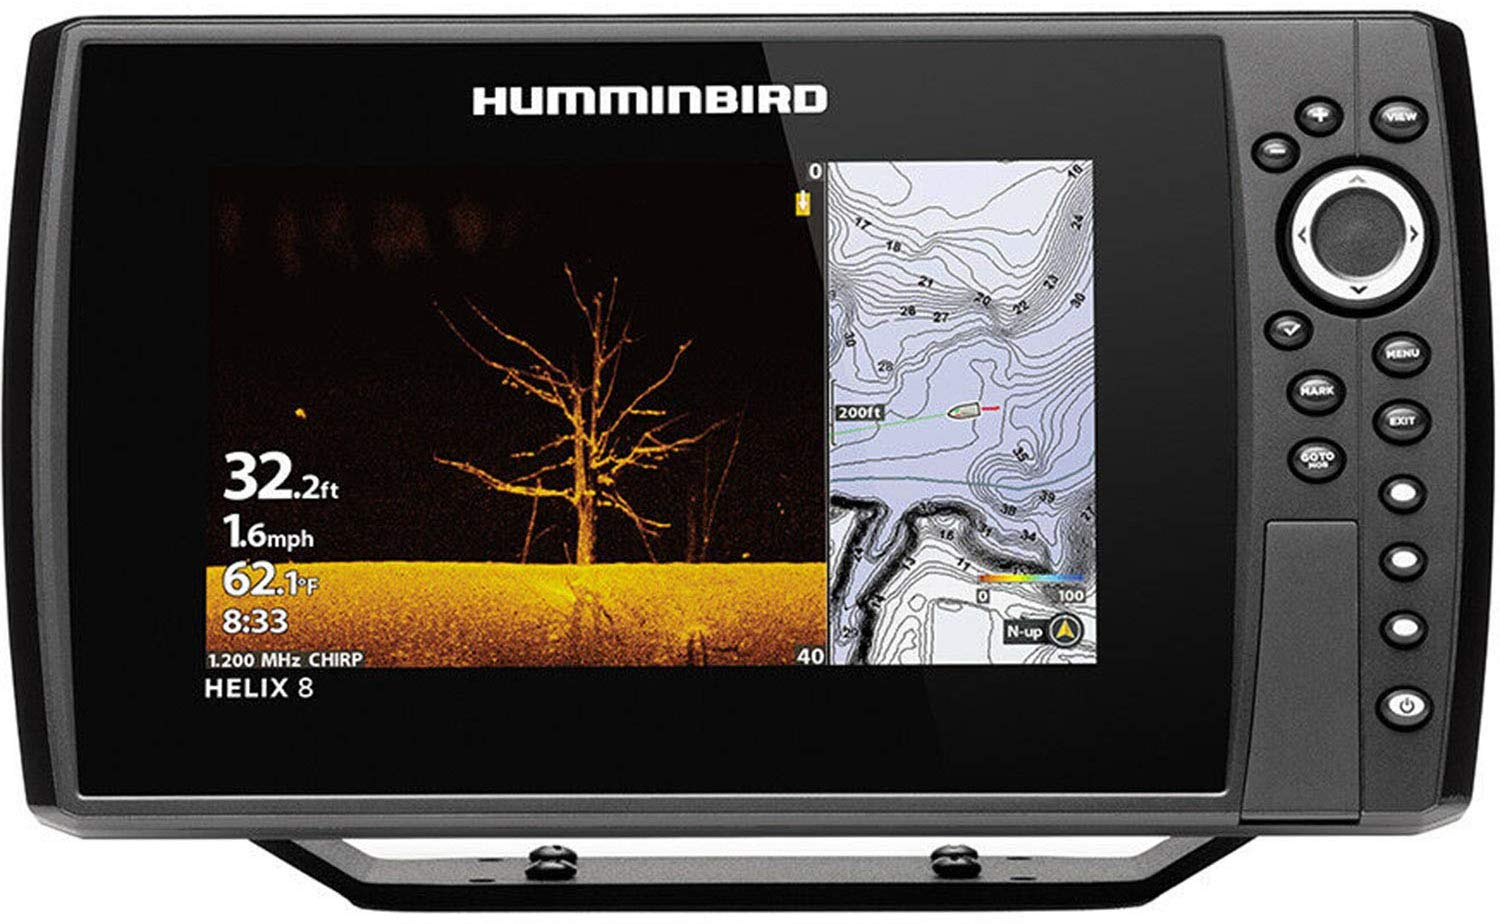 Humminbird 410910-1CHO Helix 12 G3N CHO Fish Finder with Chirp, MEGA DI, GPS, and 12.1-Inch-Display, Black